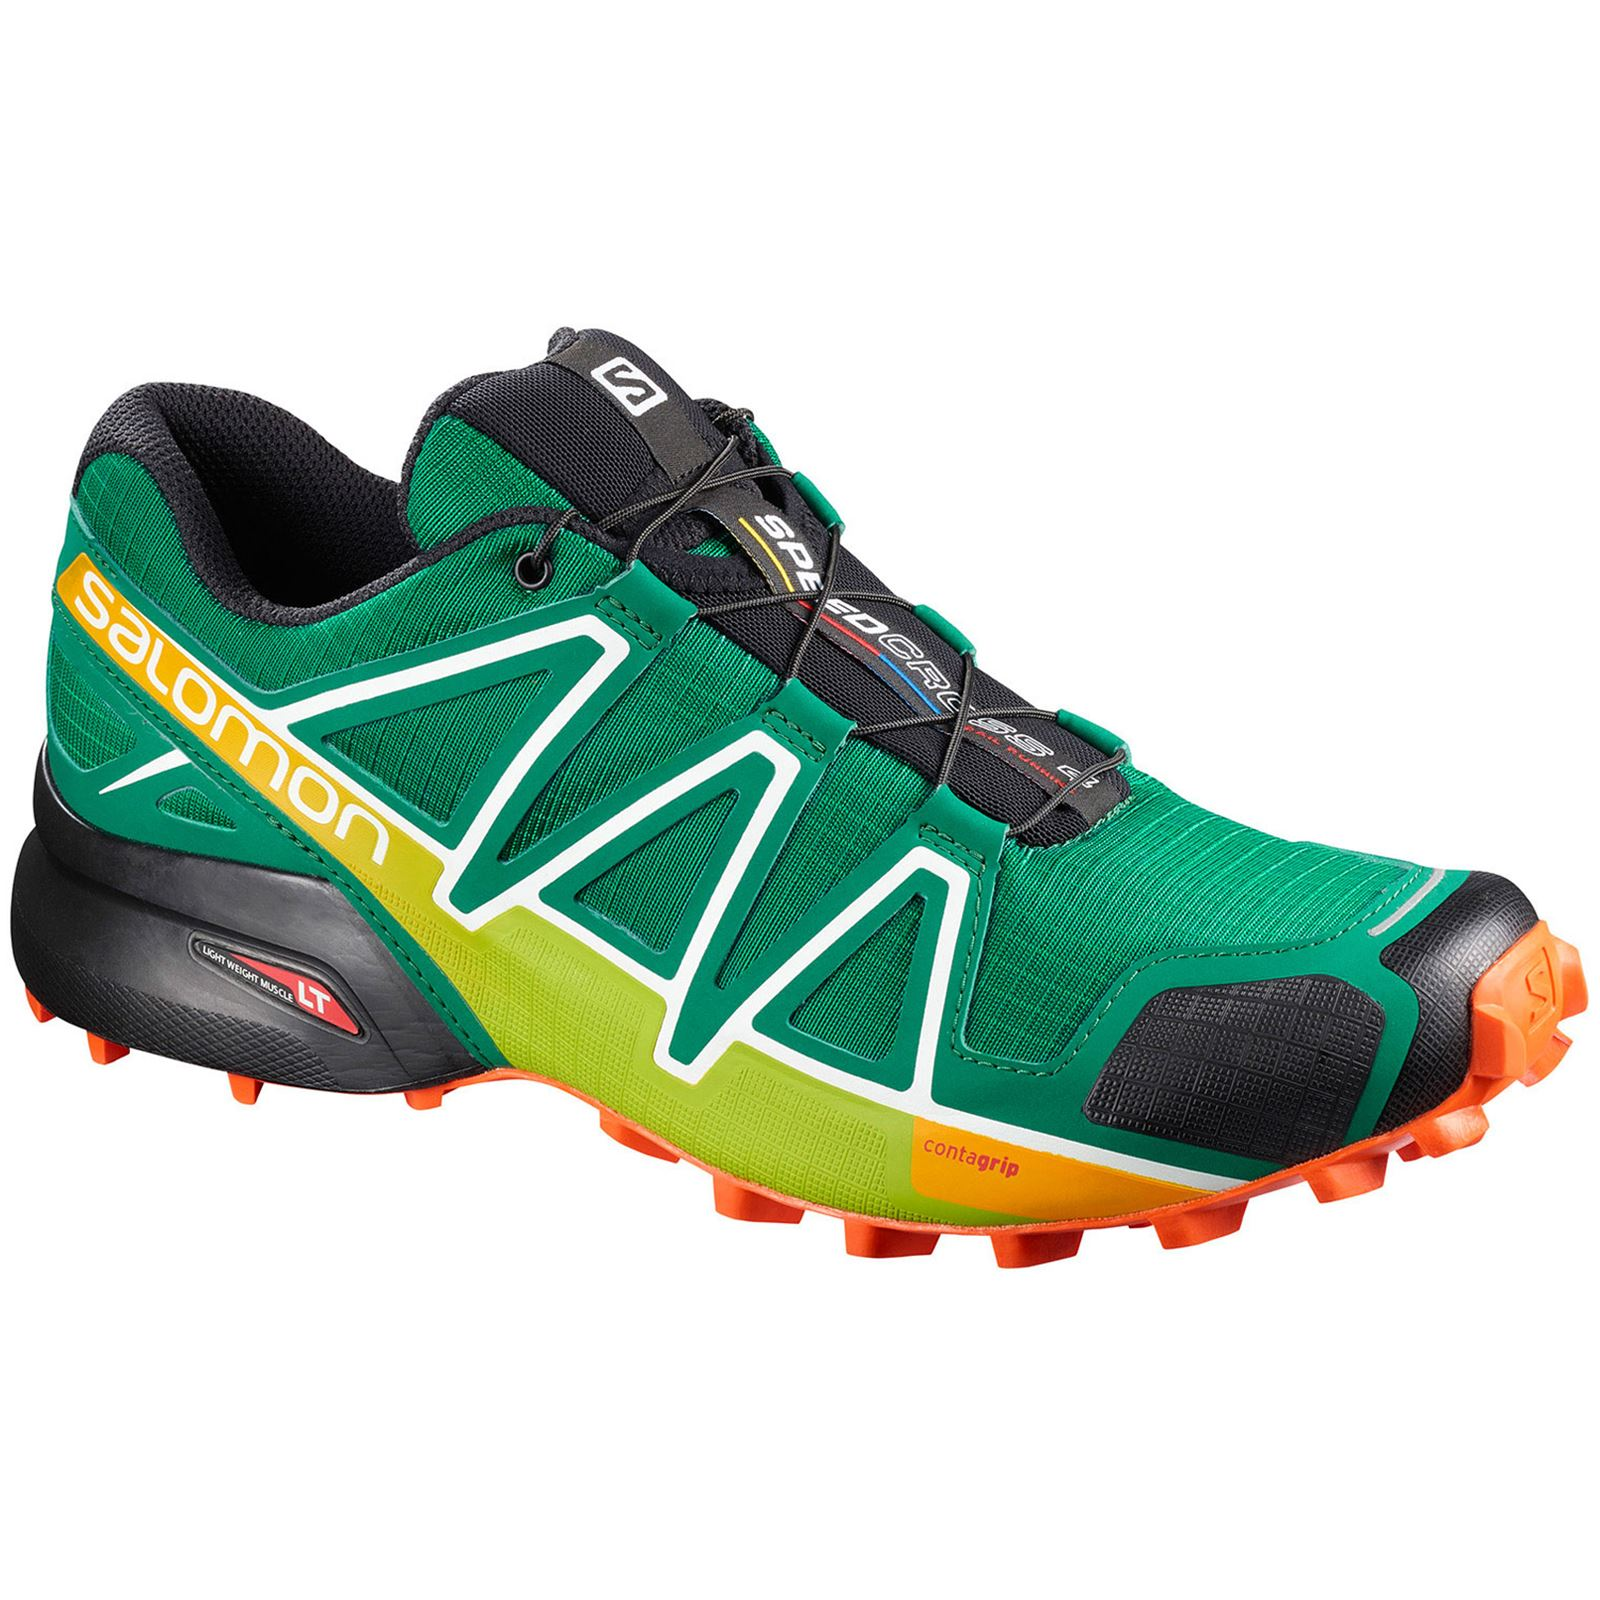 Salomon Speedcross 4 Ultramarine Green Black Men Mesh Low Top Trail Hiking Shoes